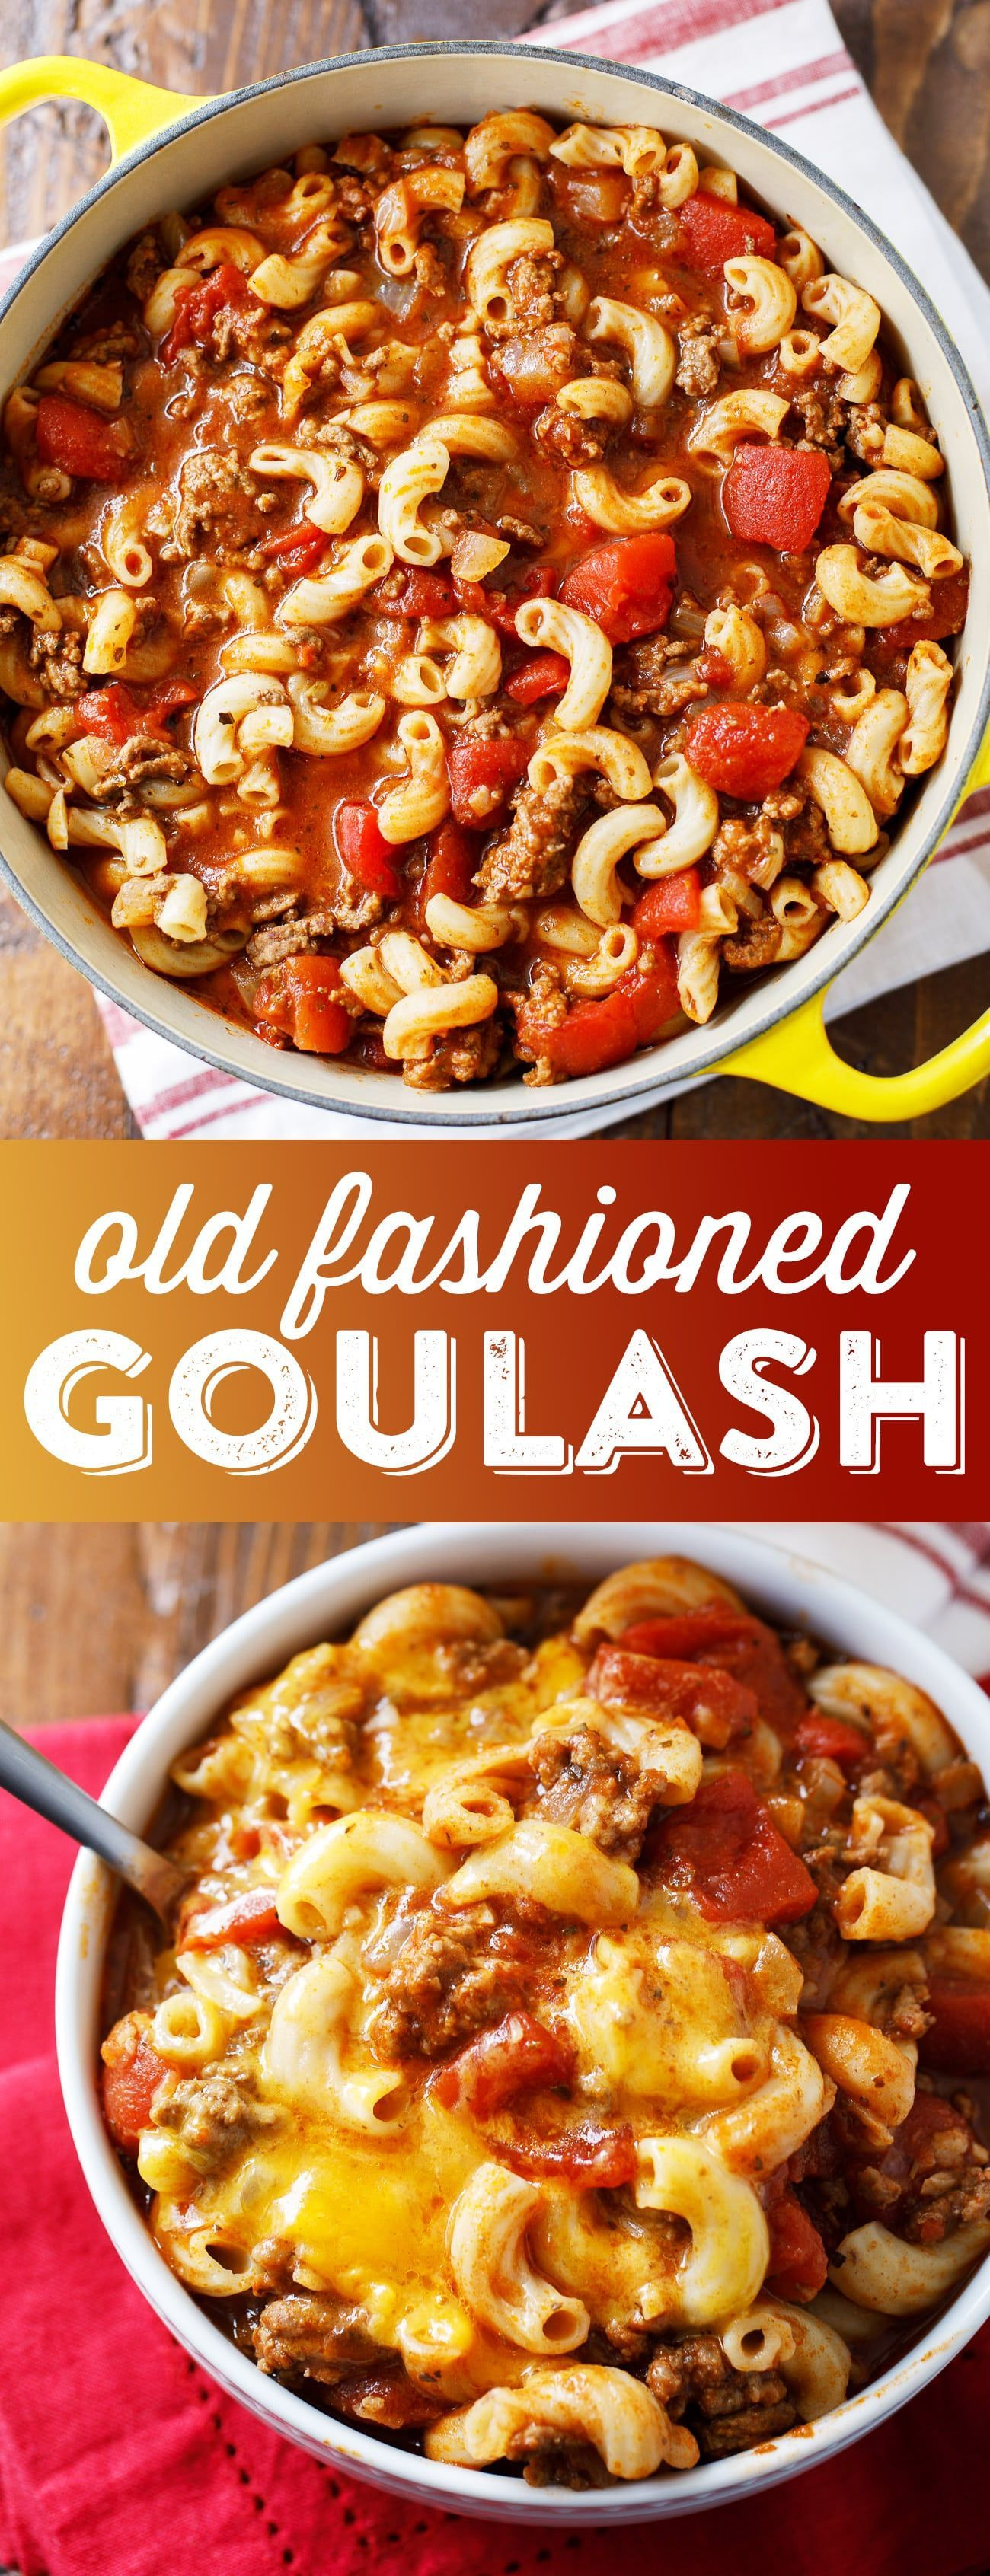 Old Fashioned Goulash These quick and easy enchiladas only call for 5 ingredients and are ready in no time! It's the perfect recipe for a busy weeknight! #gulaschrezept